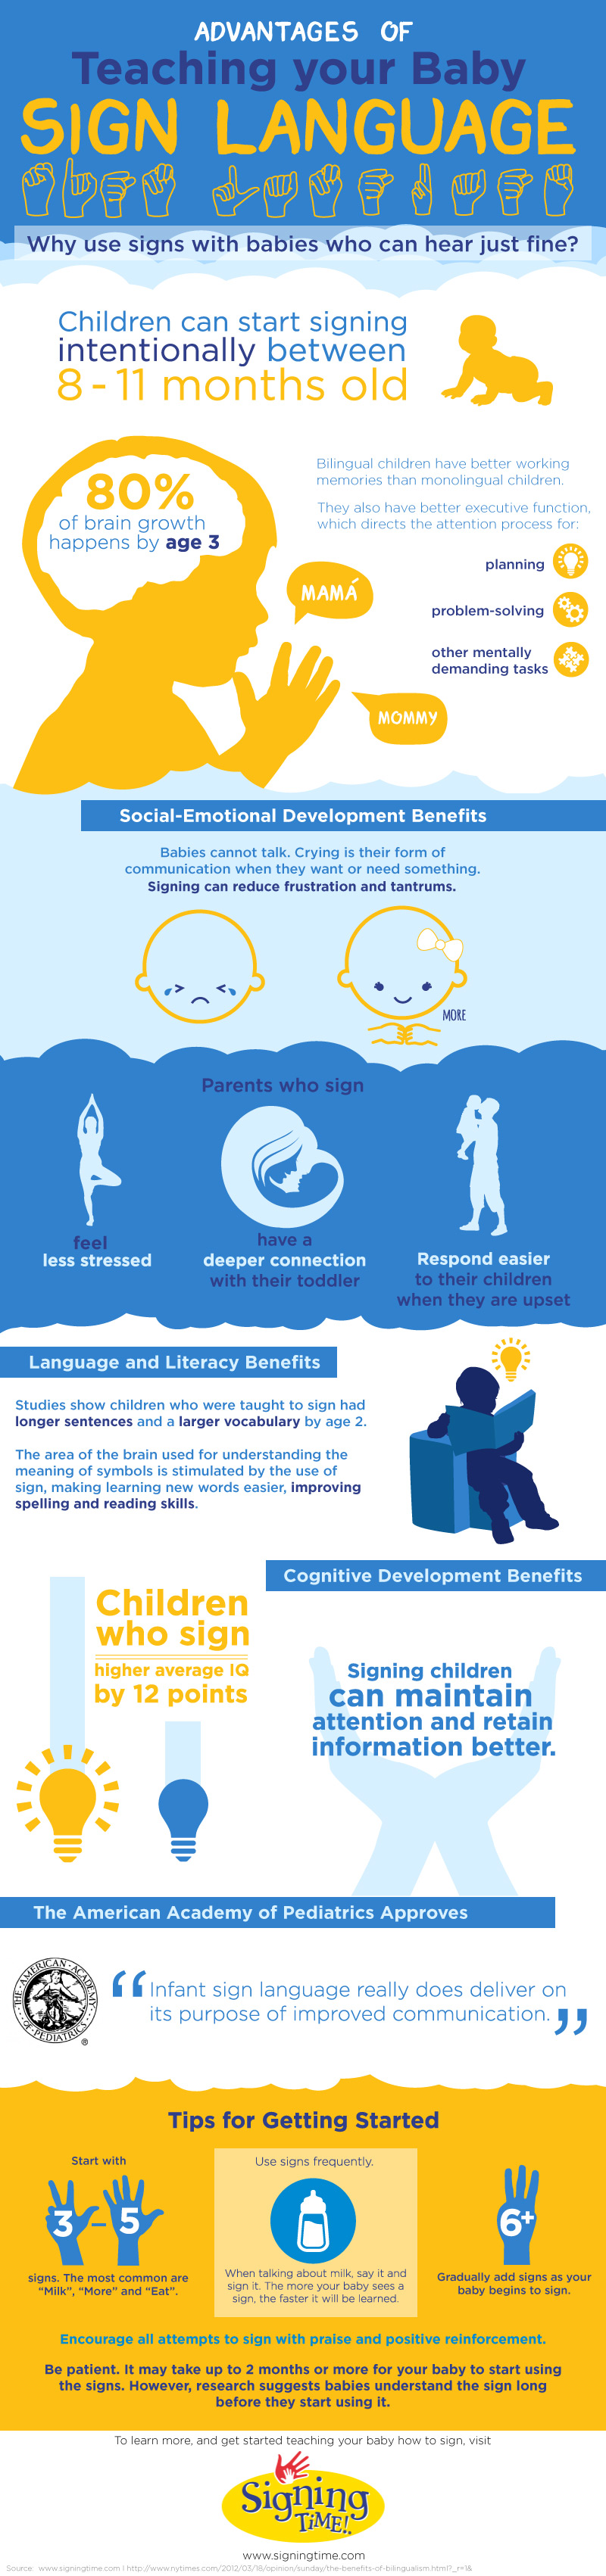 baby sign language infographic